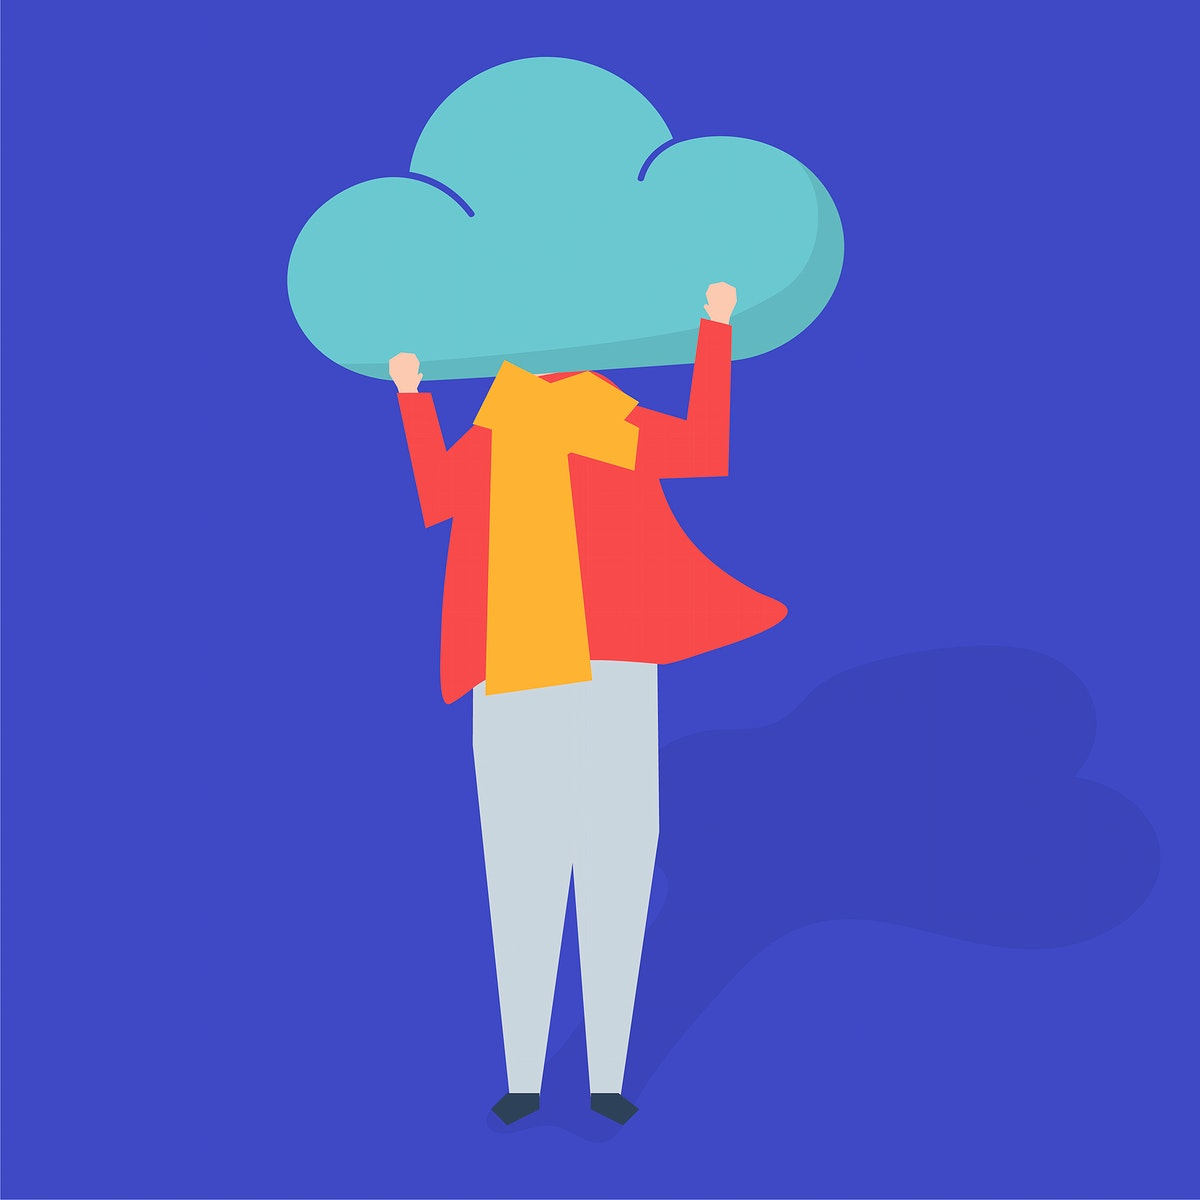 Character of a person with a cloud as a head illustration